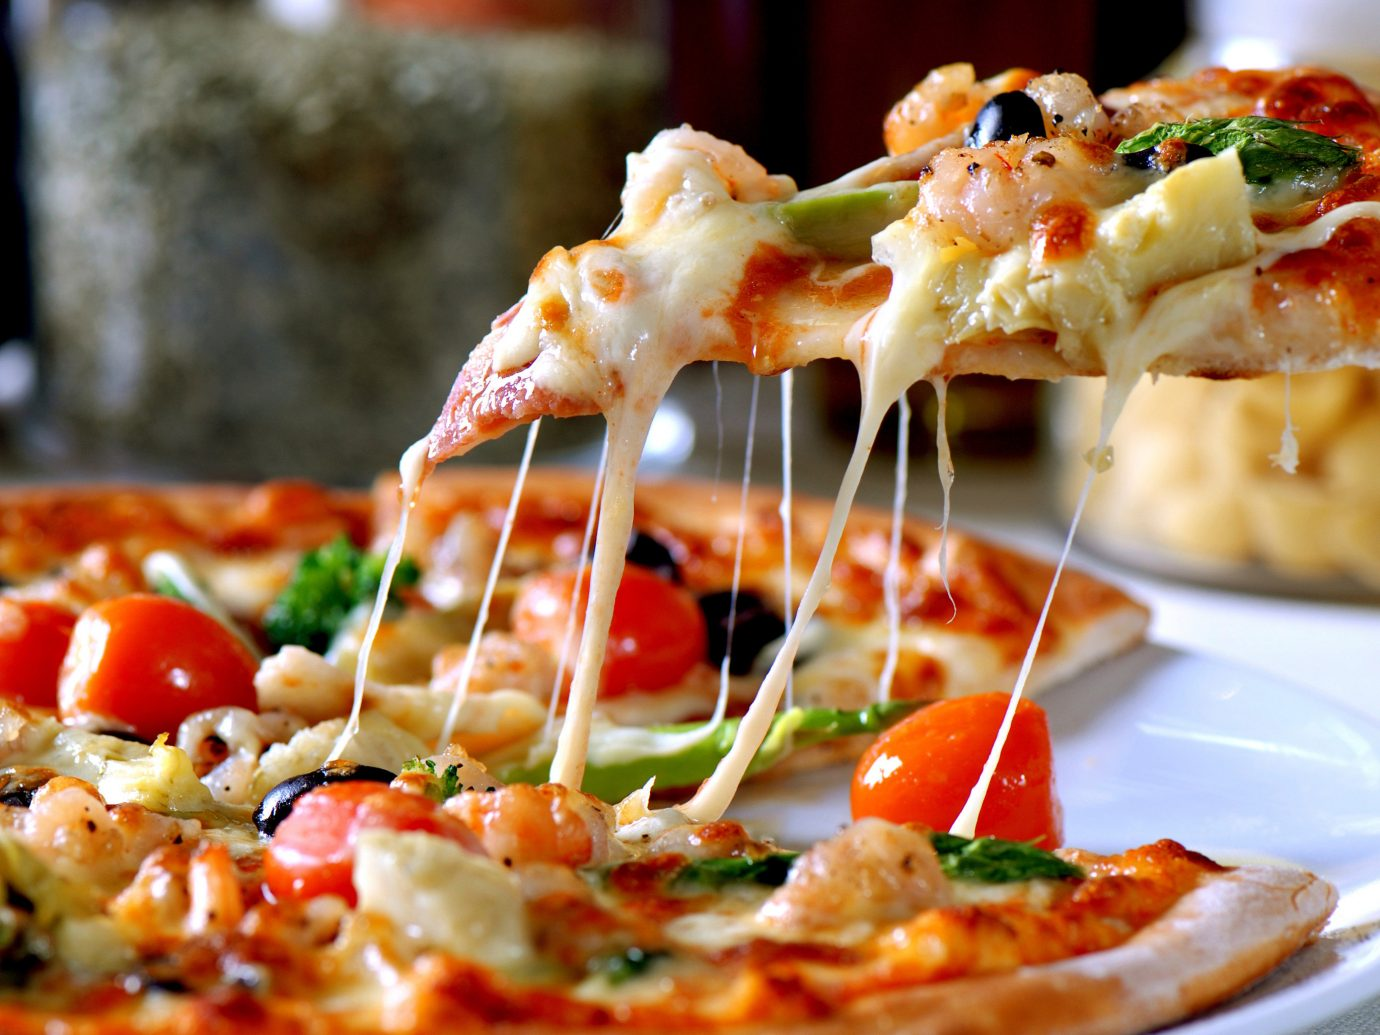 Trip Ideas food dish plate pizza cuisine slice piece italian food hors d oeuvre meal bruschetta european food produce close shrimp toppings fresh square sliced